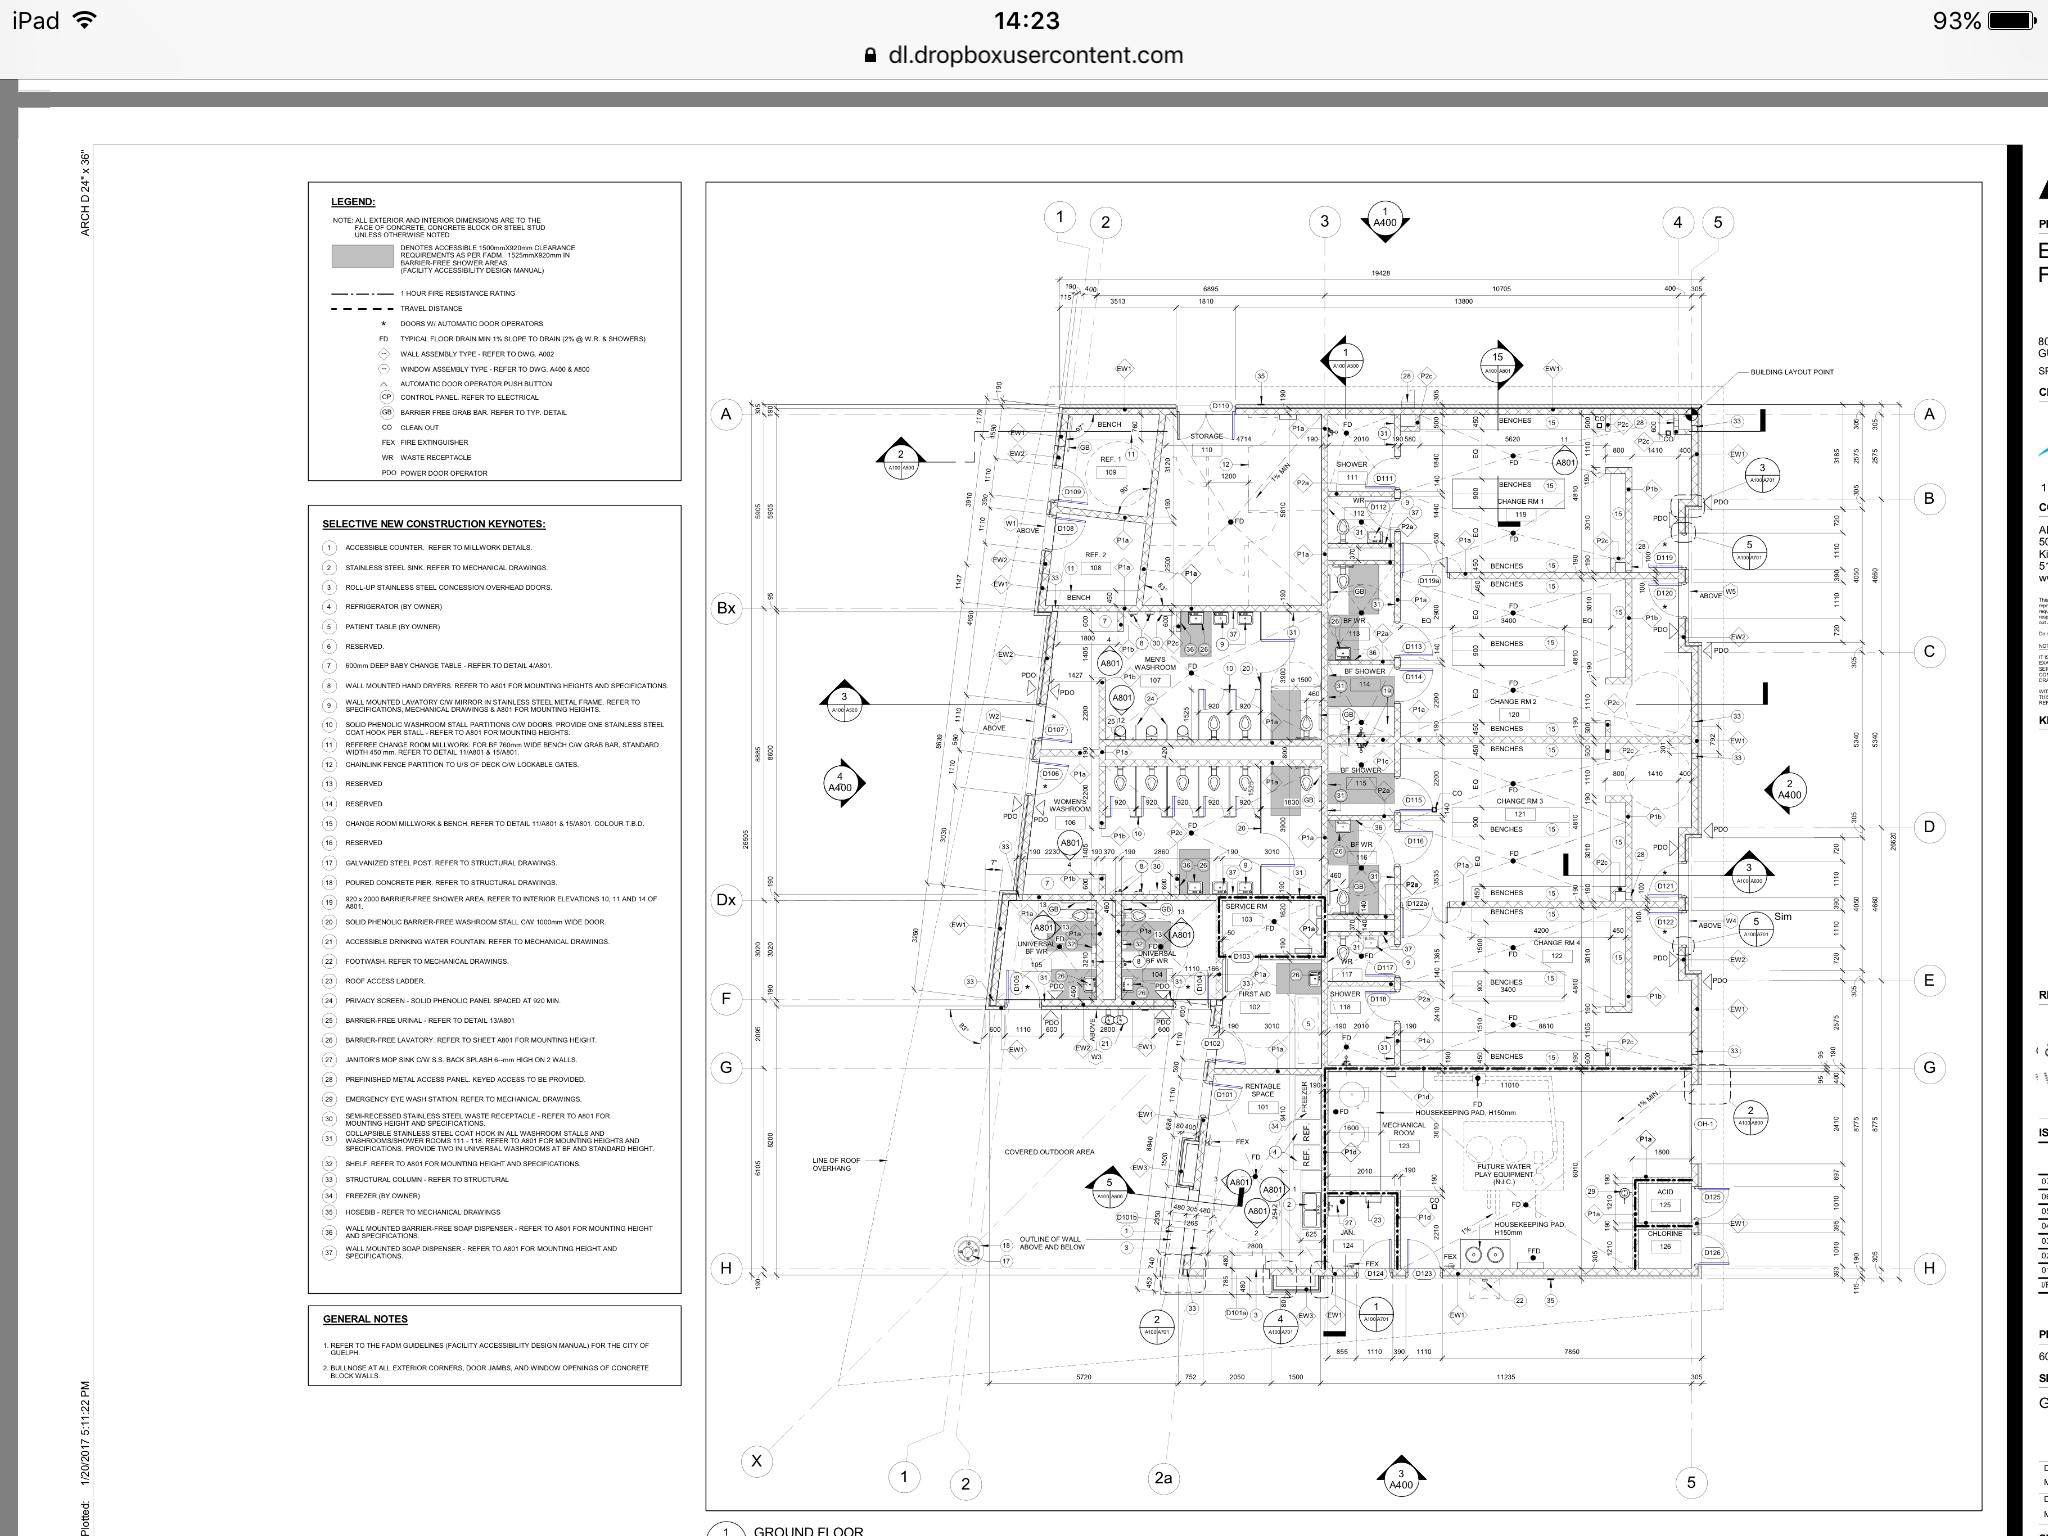 Help Needed Reading Commercial Blue Print - General ... on fire prints, national electrical code, basic electrical troubleshooting, electrical troubleshooting, electrical safety, pneumatic prints, mechanical prints, paint prints, plumbing prints, architectural prints, travel prints, electrical controls, fabrication prints, hvac prints, science prints, electrical courses, automotive prints, painting prints, design prints, electrical wiring, electrical theory, environmental prints, home prints, horticulture prints, electrical control equipment, tires prints, industrial prints, veterinary prints,